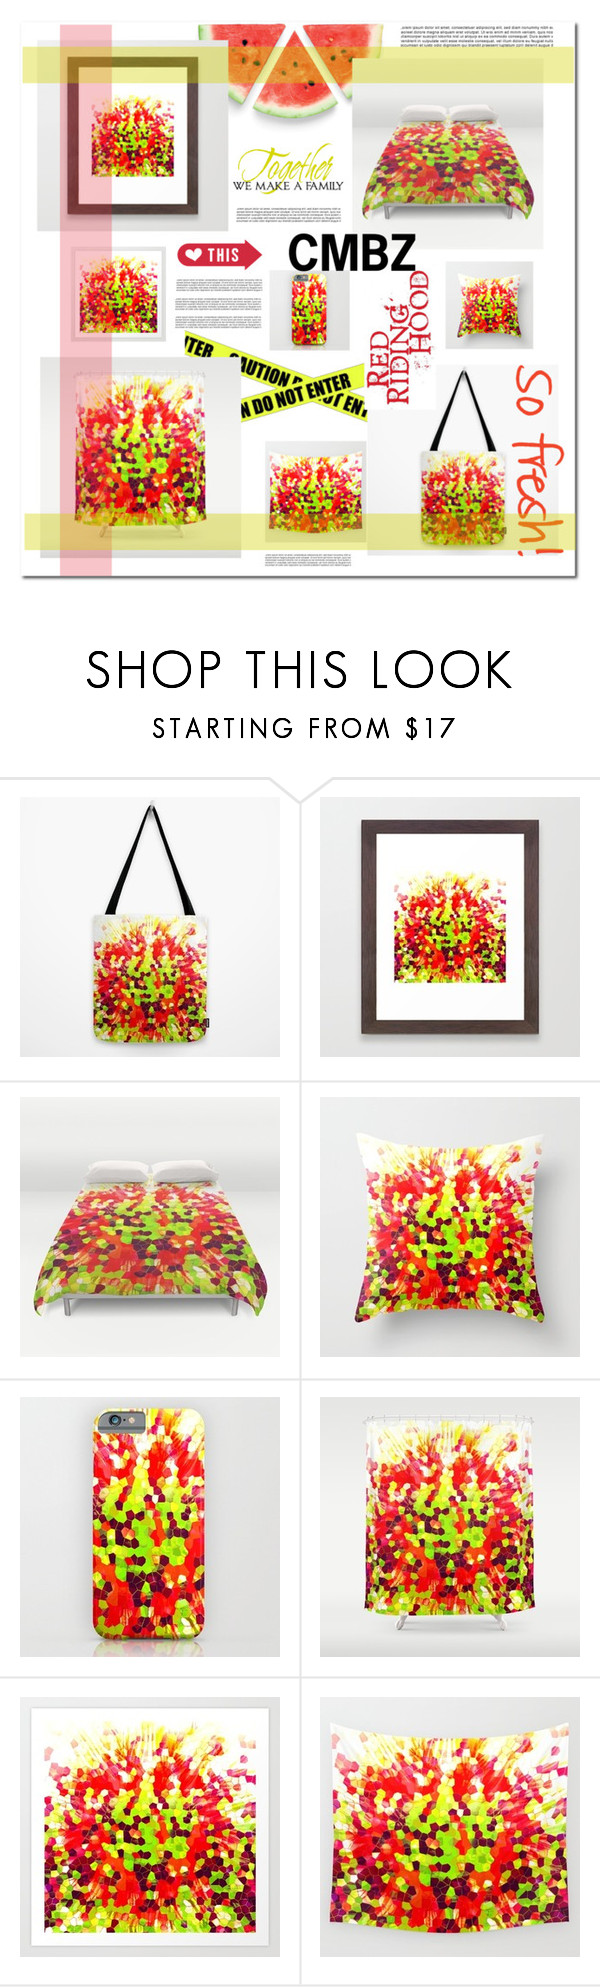 """""""CMBZ"""" by melodibrown ❤ liked on Polyvore featuring interior, interiors, interior design, home, home decor and interior decorating"""